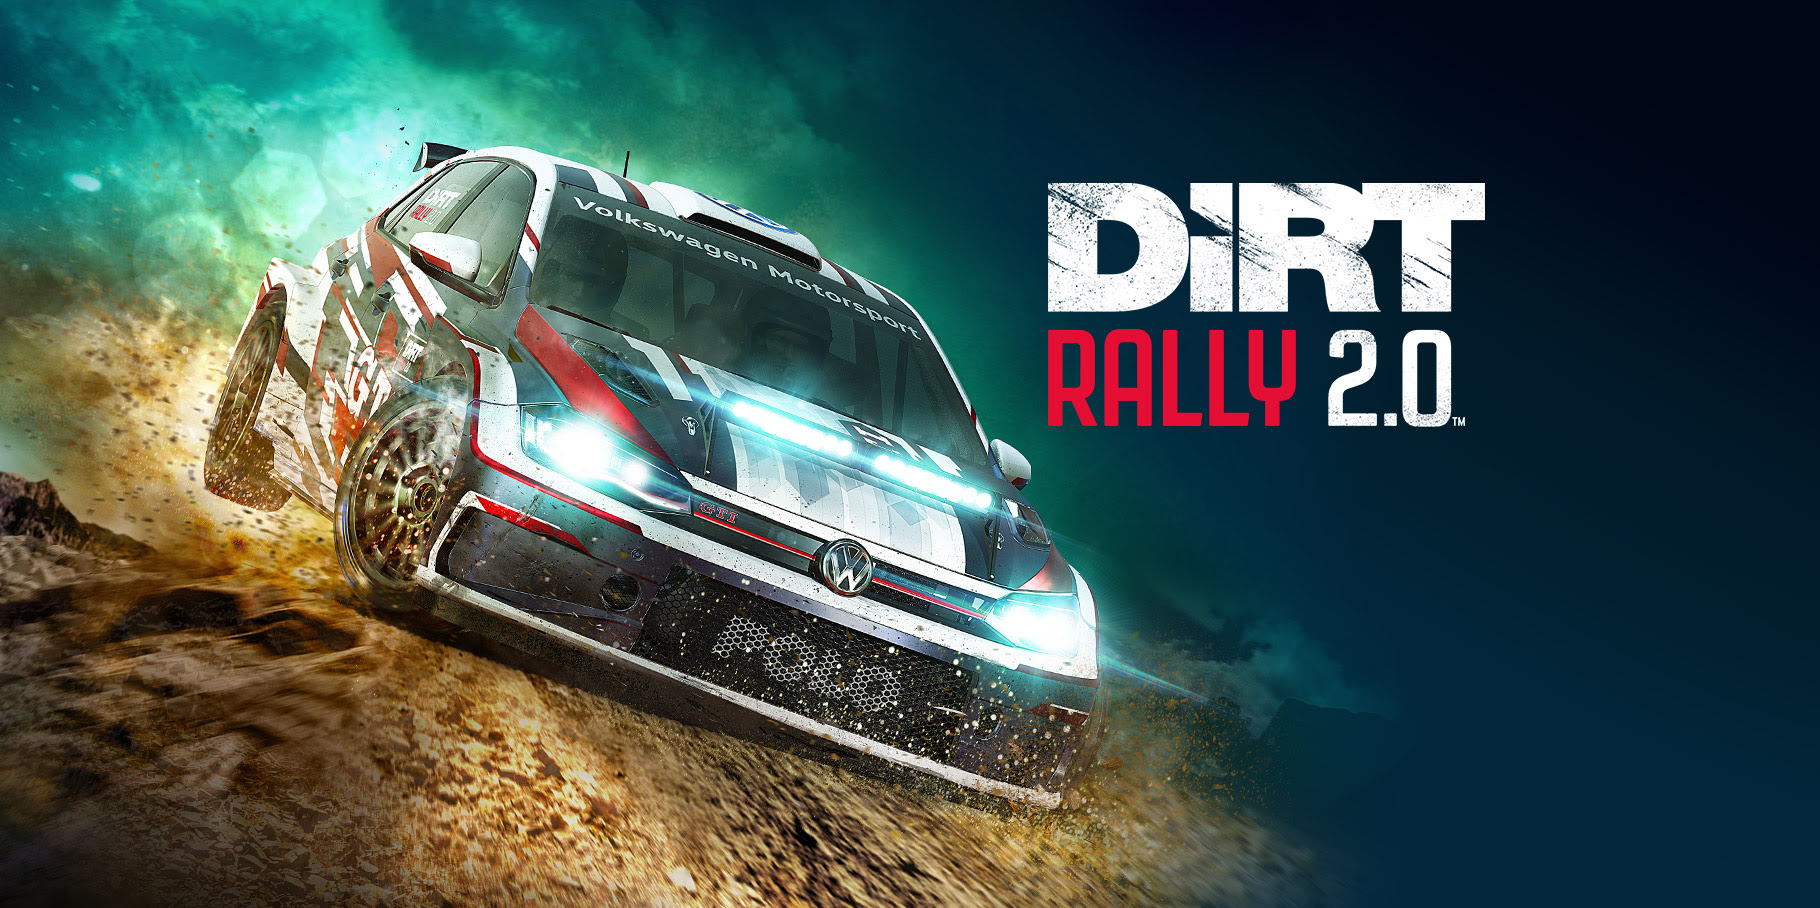 Dirt Rally 20 Codemasters Racing Ahead